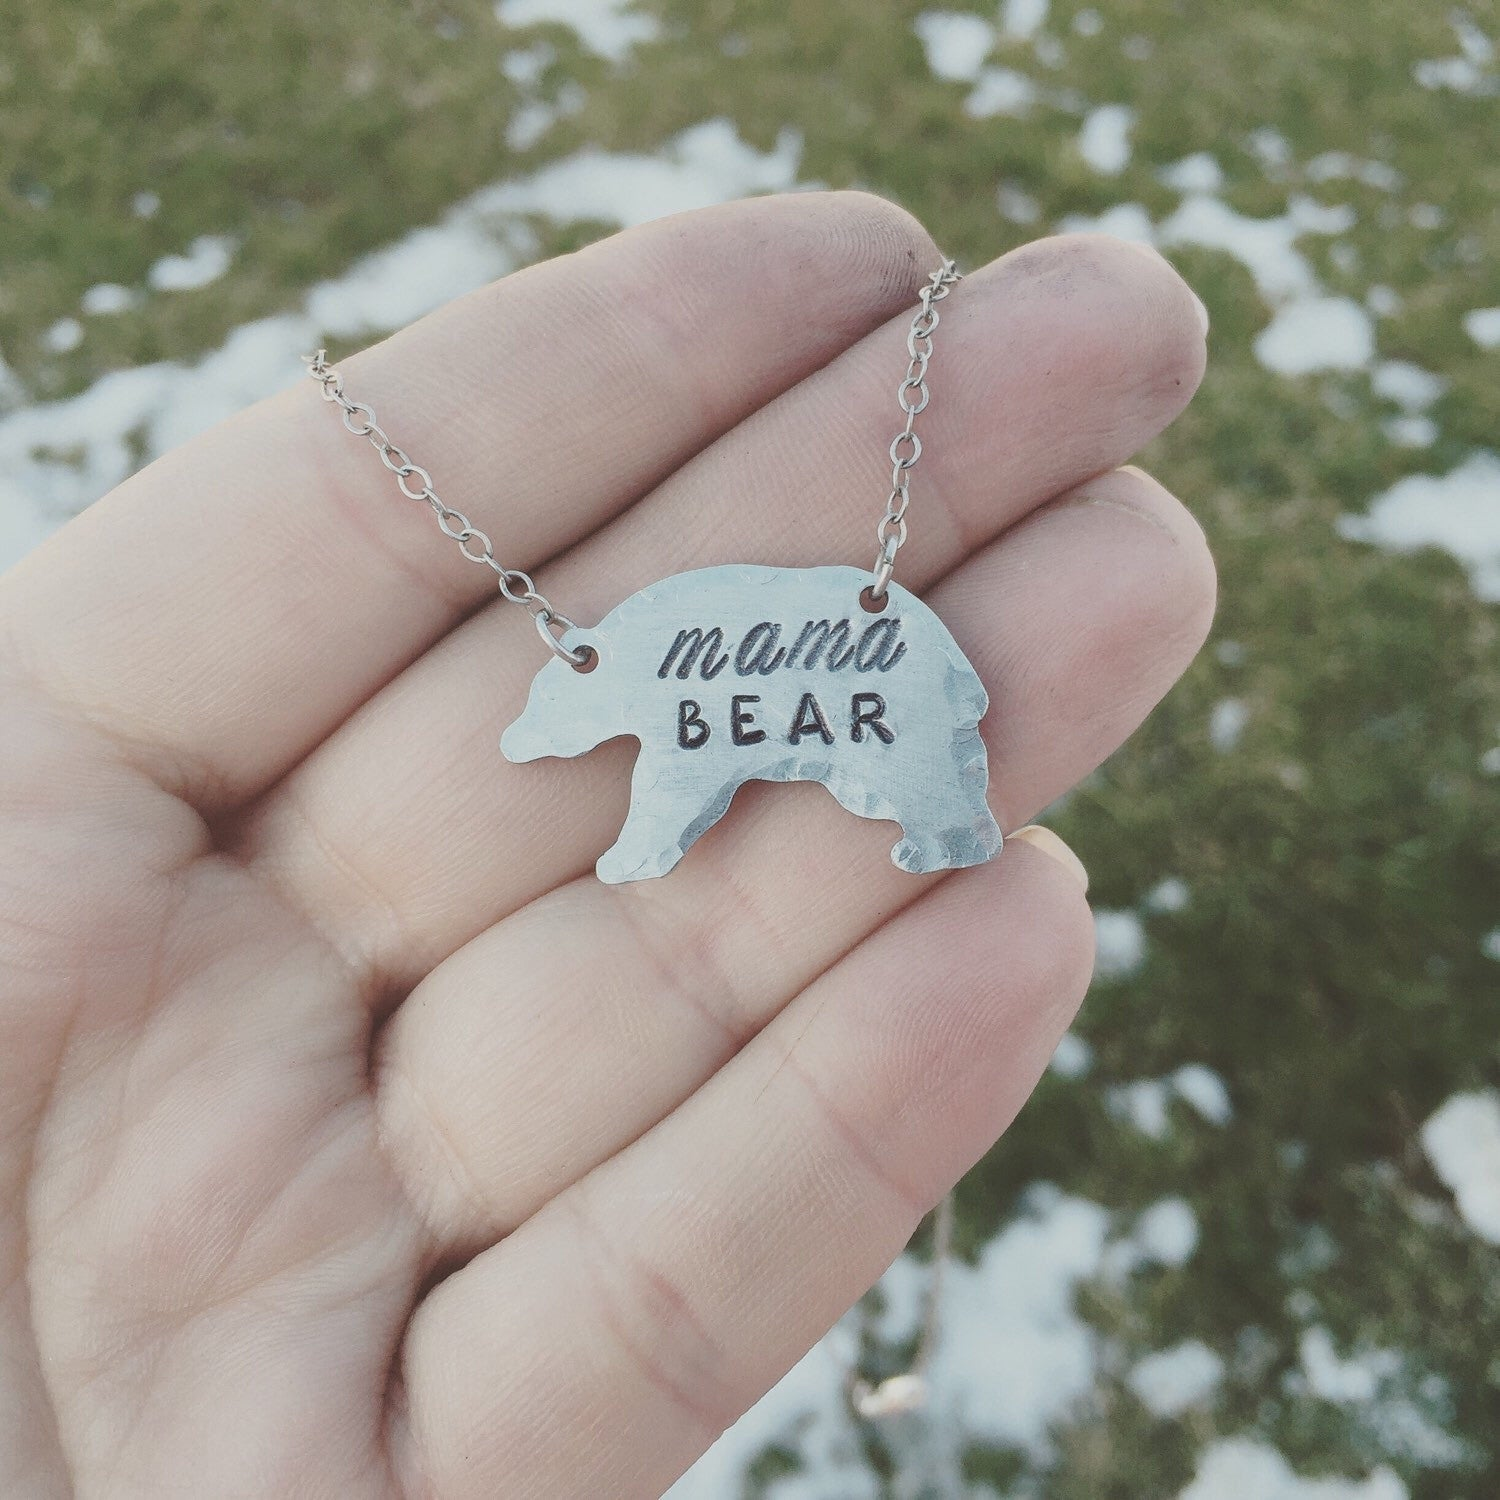 mama little bear things of necklace product the image